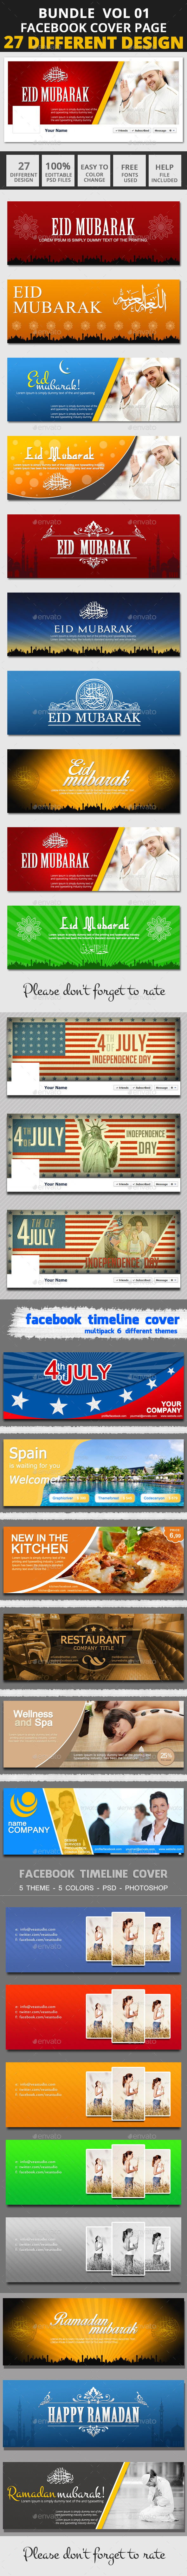 Facebook Bundle Vol01